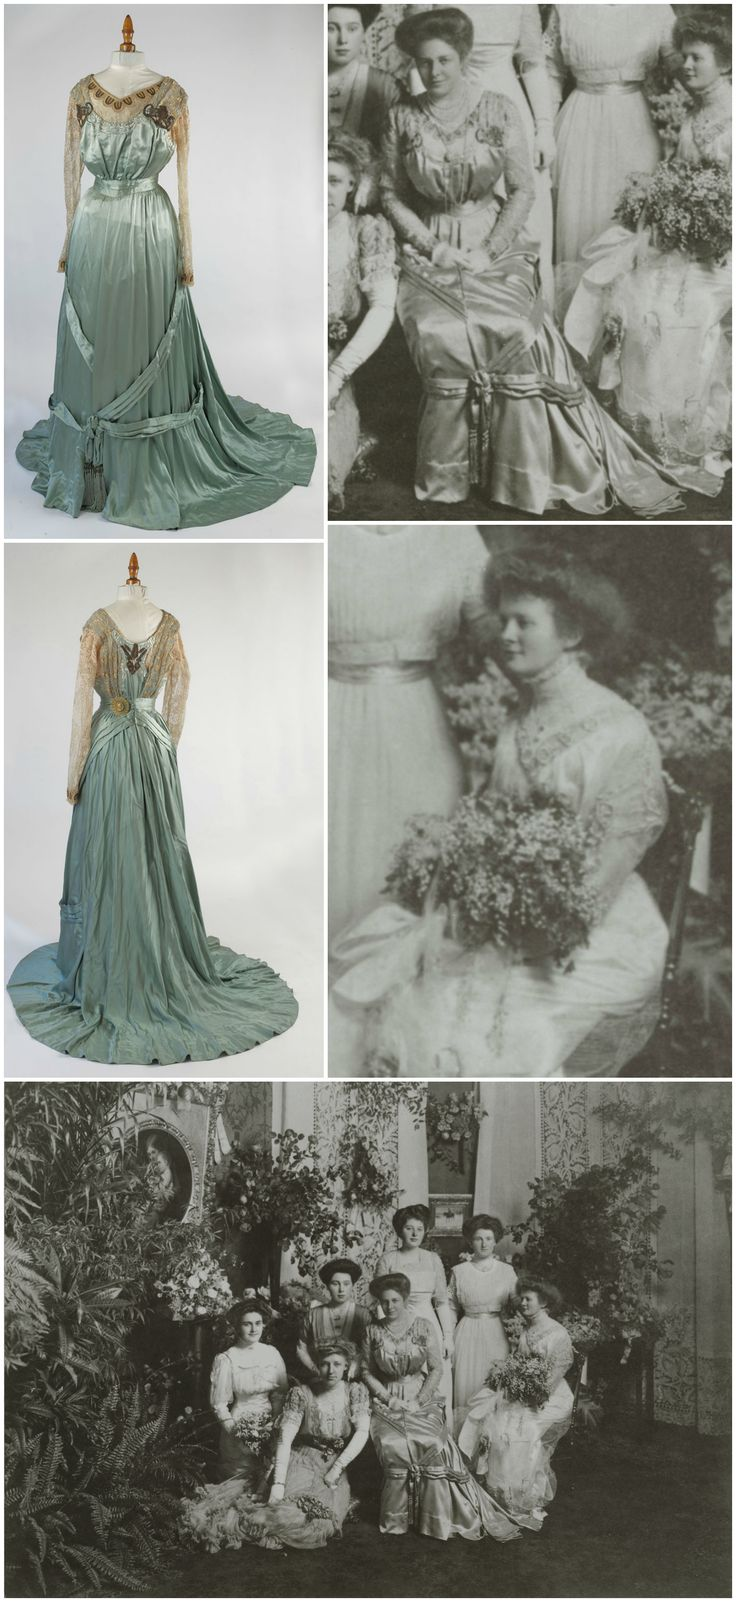 Miss Helen Frick's debut, December 16, 1908. While Miss Frick's debutante dress---white satin with white point d'esprit over it, trimmed with embroidered silver bands---did not survive, the gown worn by her mother, Mrs. Adelaide Frick, is still extant. Dress, Lichtenstein Cie Modes, Retailer, c. 1908. Mrs. Frick can be seen wearing the dress in a group photo taken at the party, which was held at Clayton, the Frick family's Pittsburgh residence.